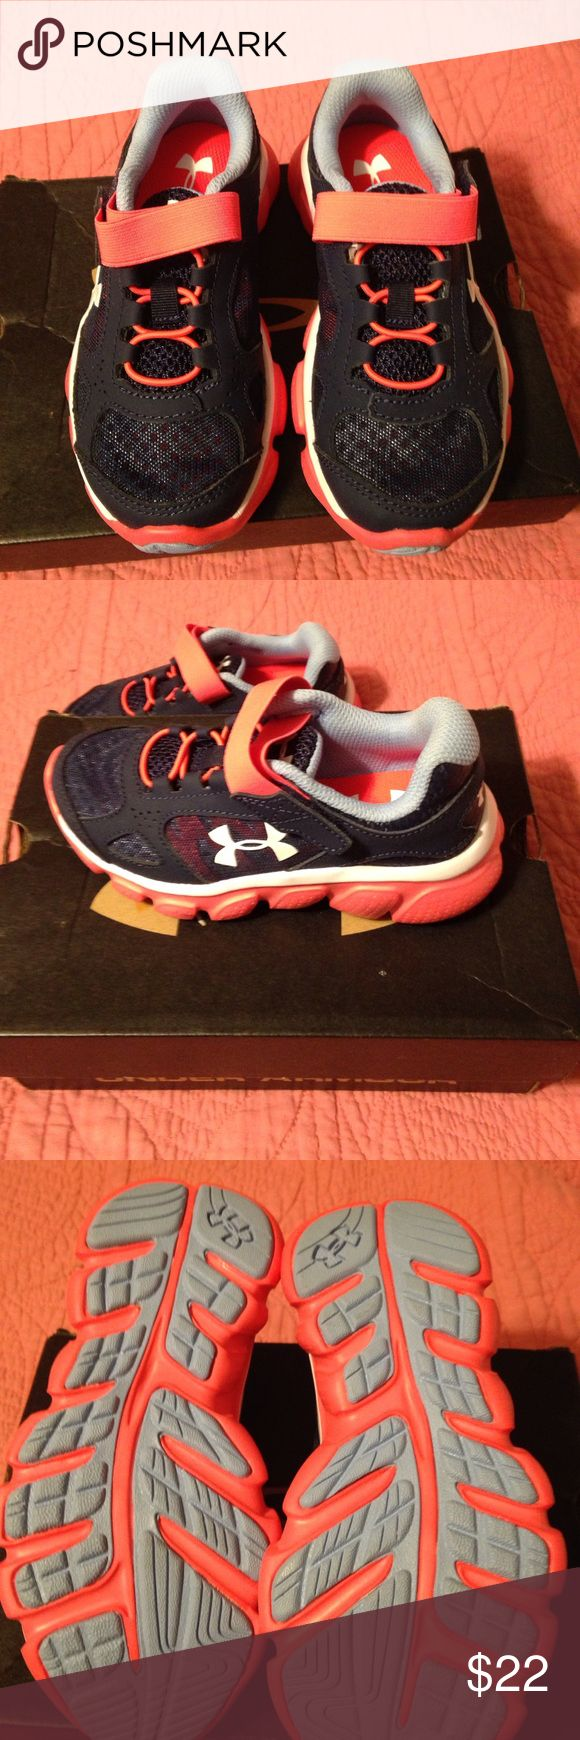 Under Armour Tennis Shoes Under Armour navy/pink tennis shoes with Velcro close. Never worn! Under Armour Shoes Sneakers